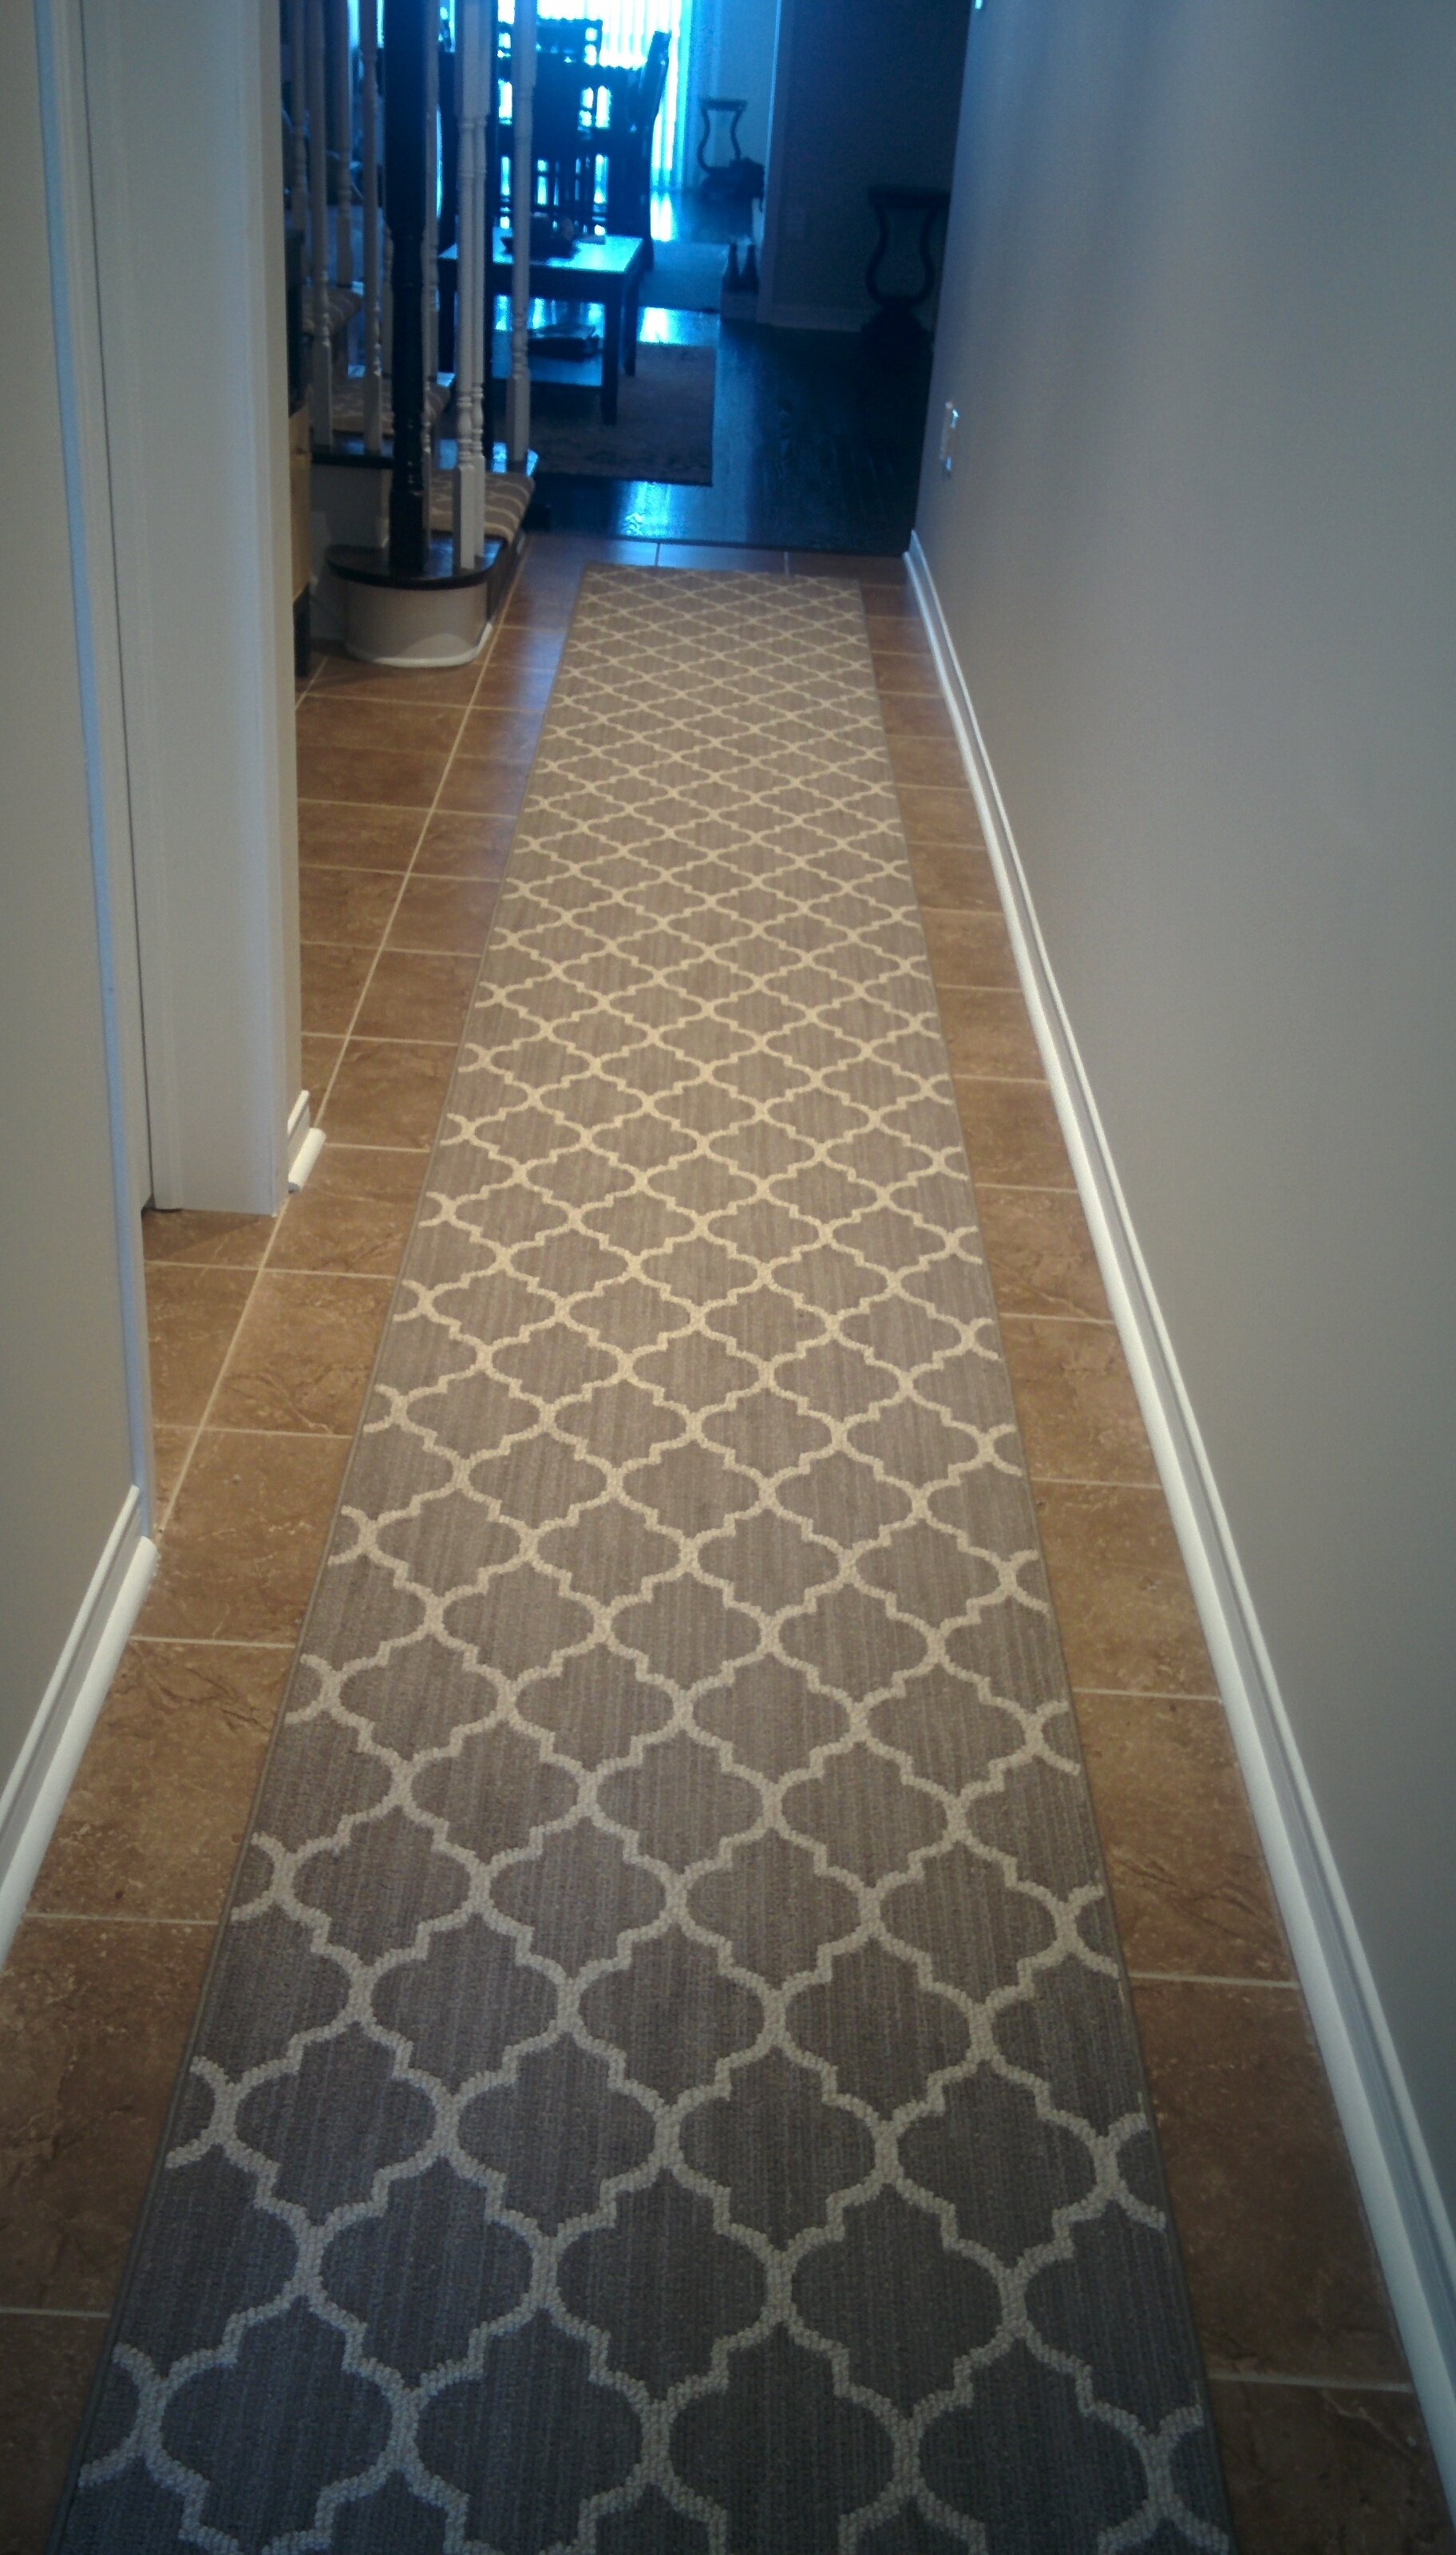 Stair Runner Toronto Hallway Carpet And Stair Runners Installation   Carpet For Stairs And Hallway   Living Room   Low Pile   Contemporary   Country Style   Quirky